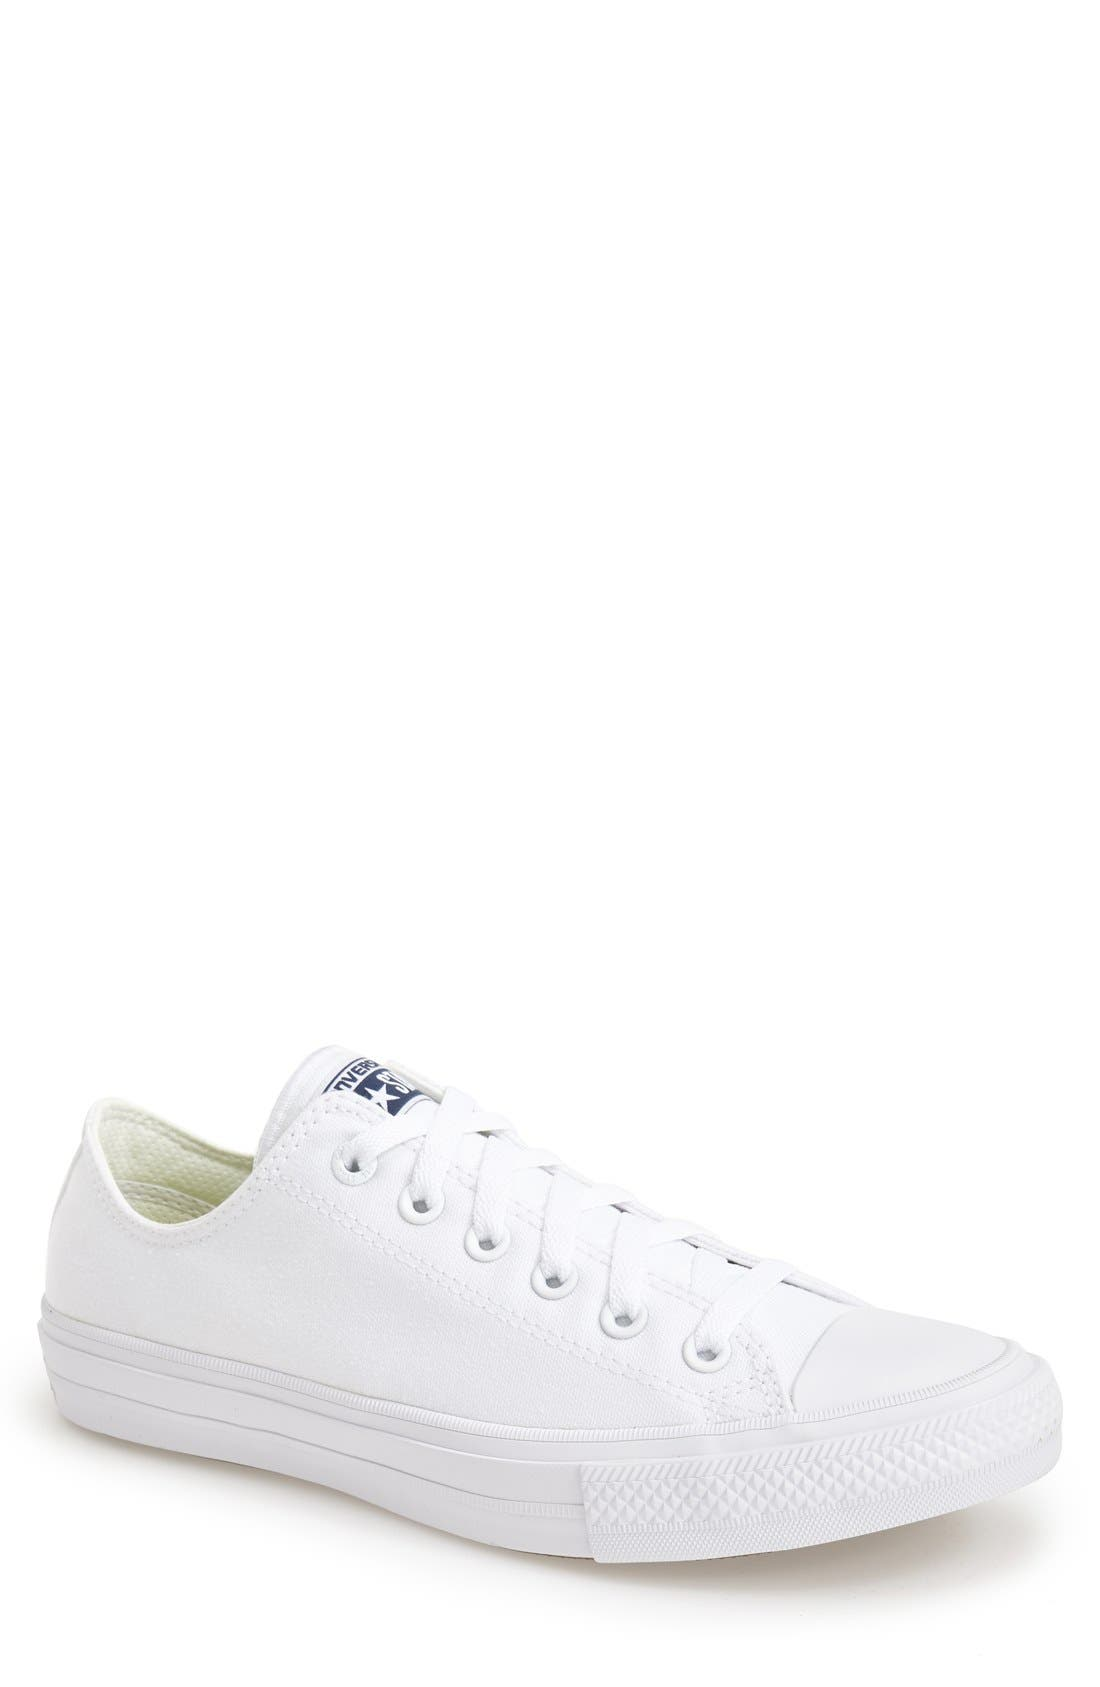 Main Image - Converse Chuck Taylor® All Star® II 'Ox' Canvas Sneaker (Men)